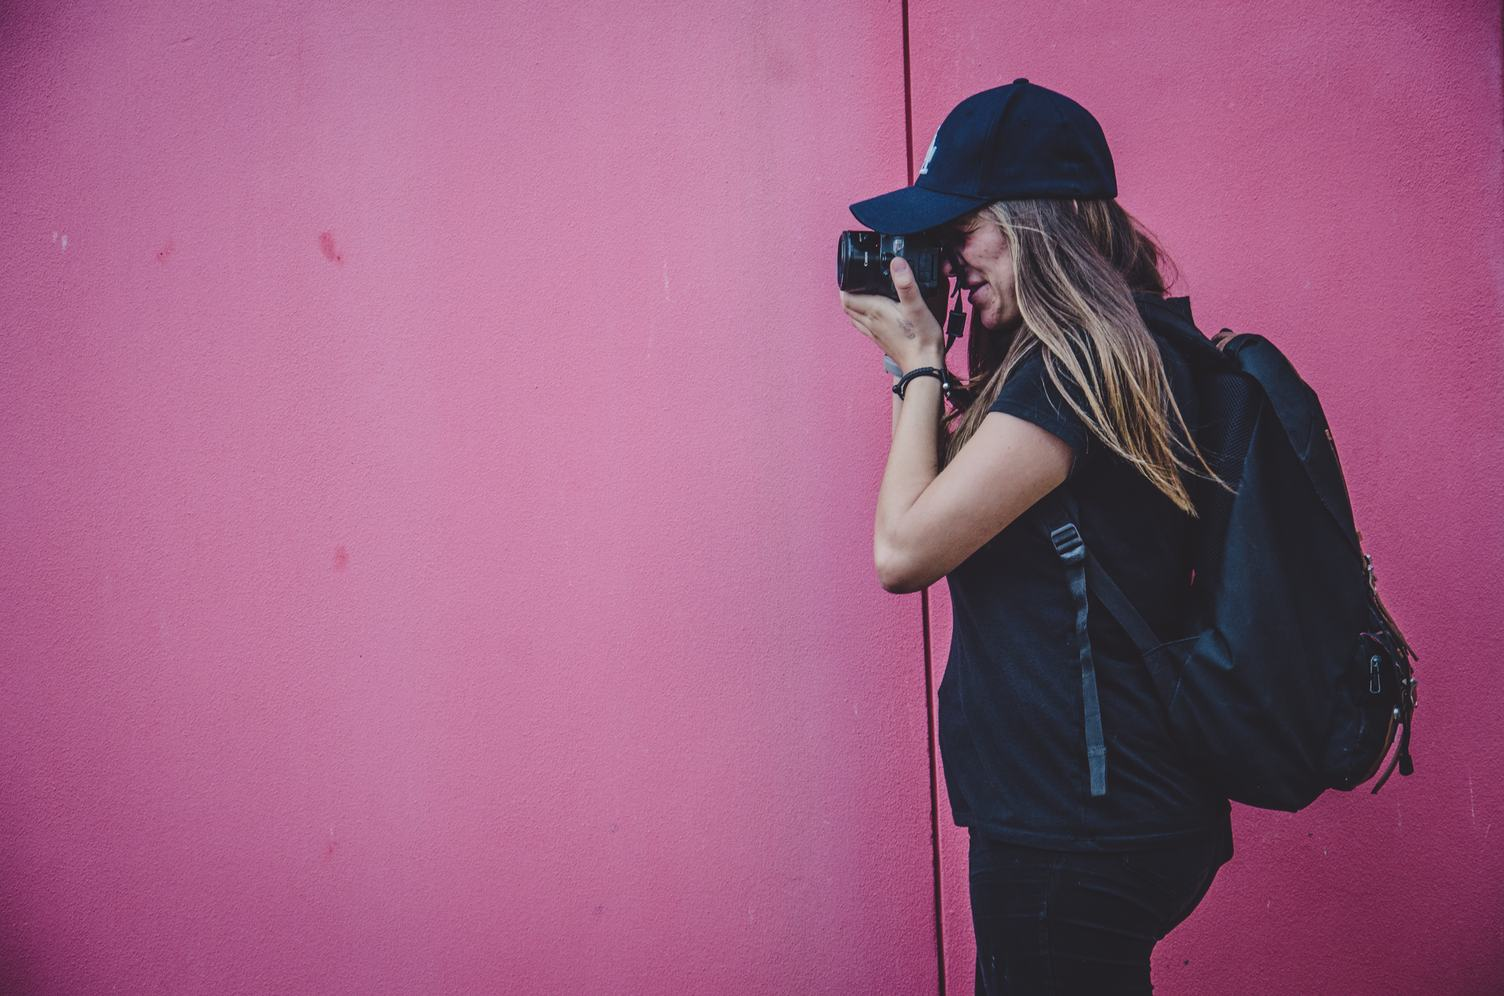 Female Photographer Shooting on a Pink Wall Background